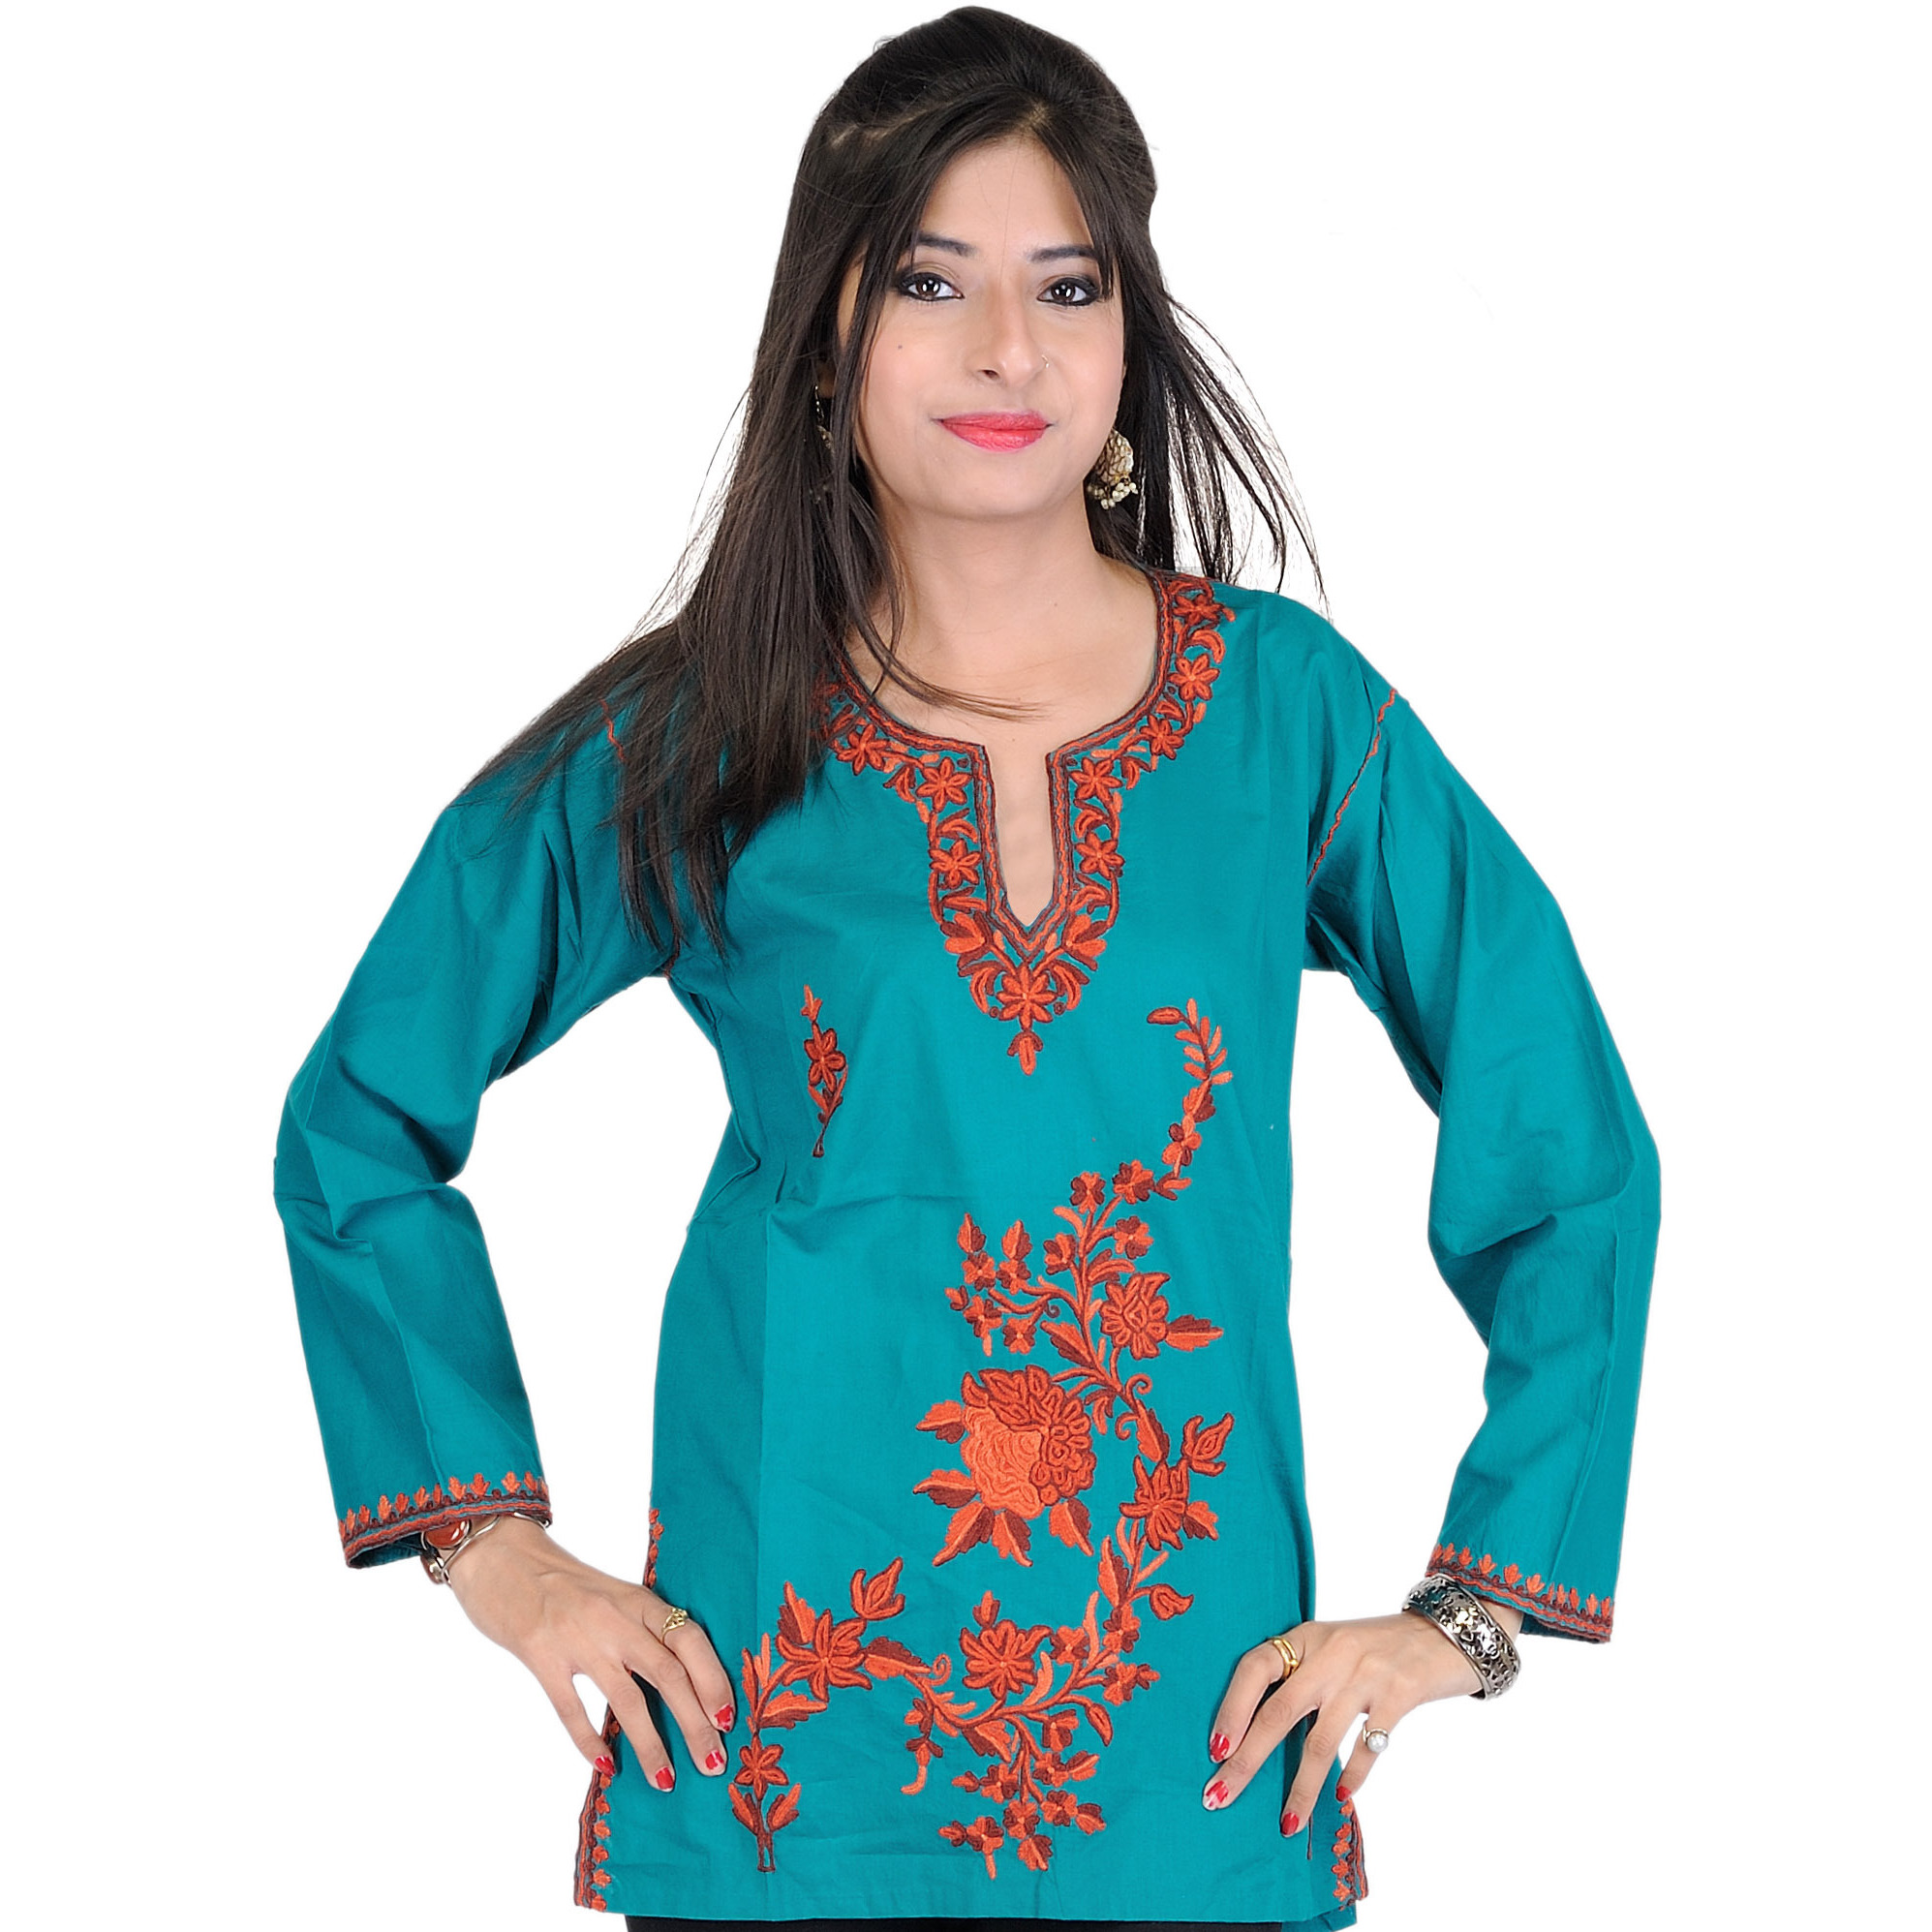 Teal-Green Kurti from Kashmir with Ari Embroidered Flowers by Hand